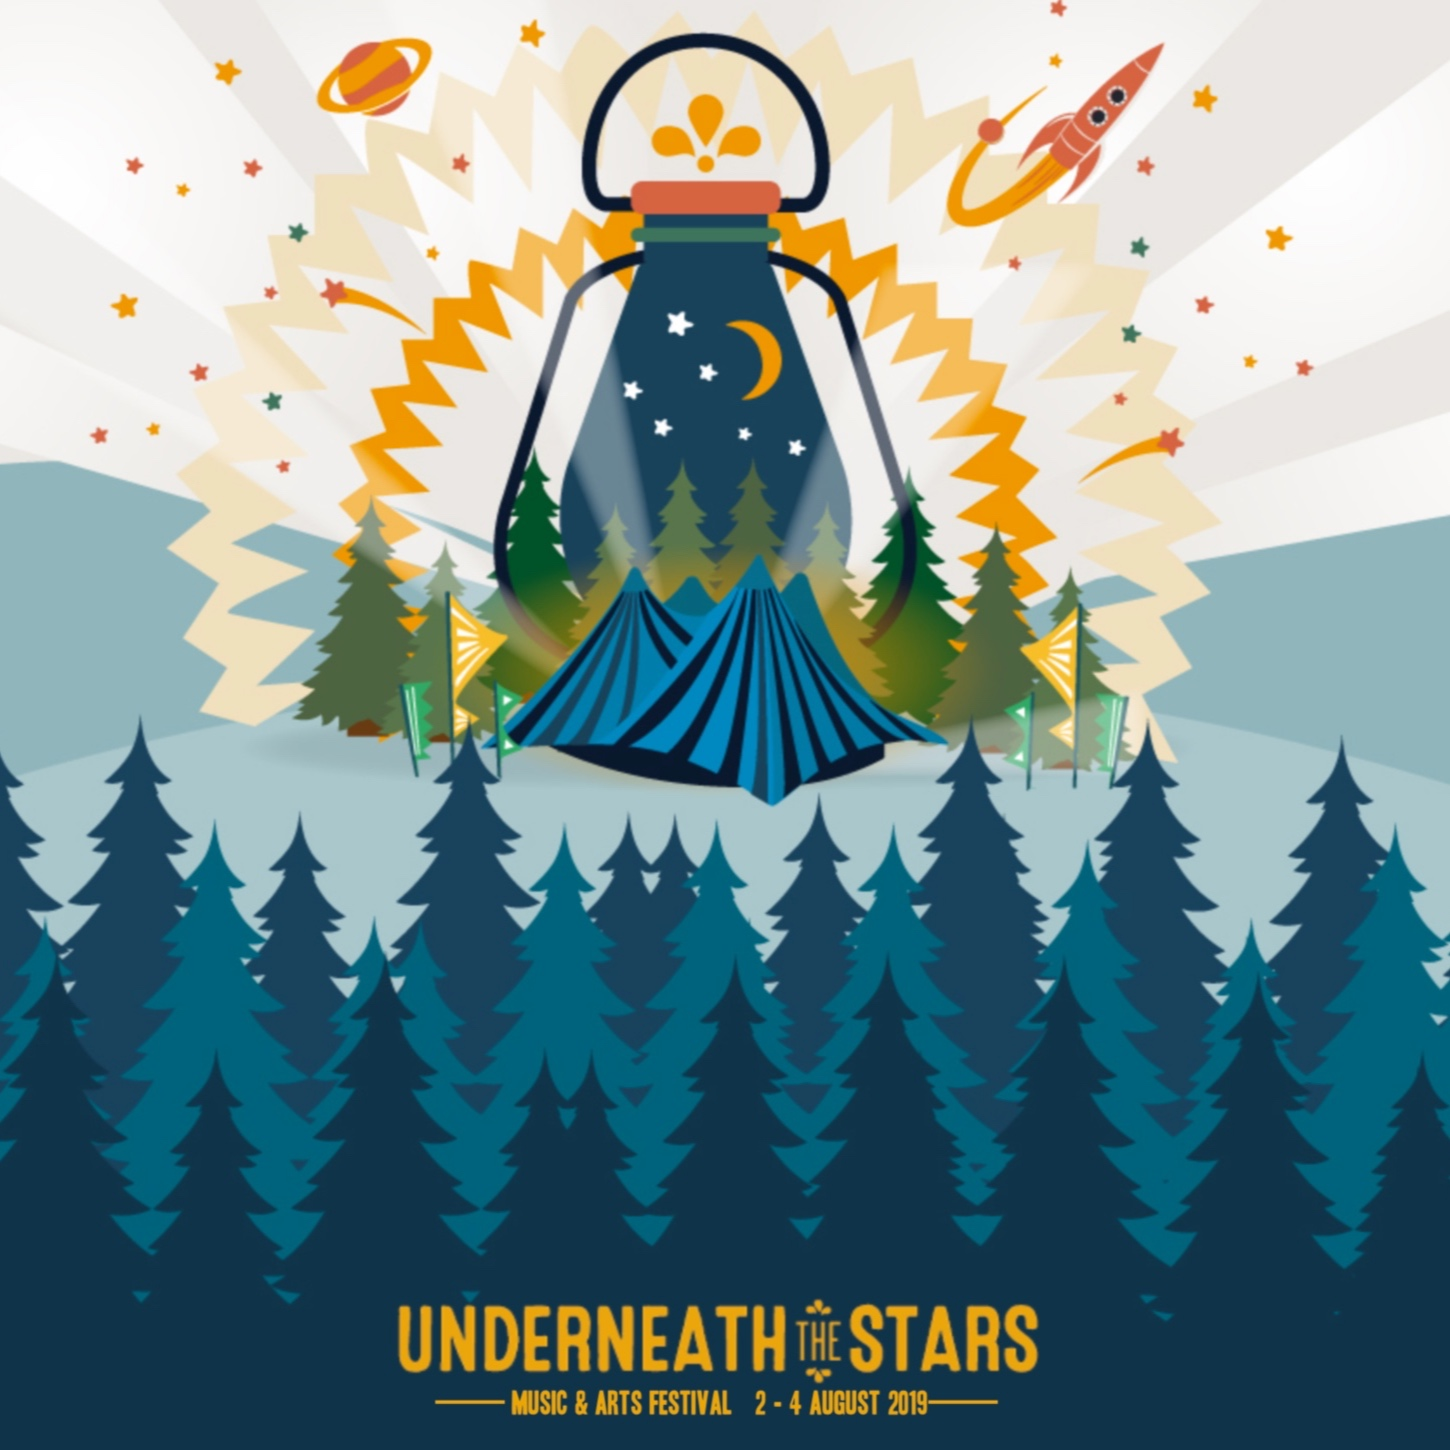 Underneath the Stars Festival Family Ticket - Underneath the Stars Festival is a family-friendly Yorkshire music festival held at Cinderhill Farm Cawthorne in Barnsley on 2nd-4th August 2019. This year the line-up includes, The Proclaimers, Kate Rusby and Billy Bragg, alongside many other wonderful performances from established and emerging talent across the folk, roots, bluegrass, fusion and Americana music worlds. We have a whole host of family friendly activities and entertainment designed with kids in mind and packed full of fun. The ticket includes 2 adults and up to 3 children (aged 17 & under) with camping plot, if required.